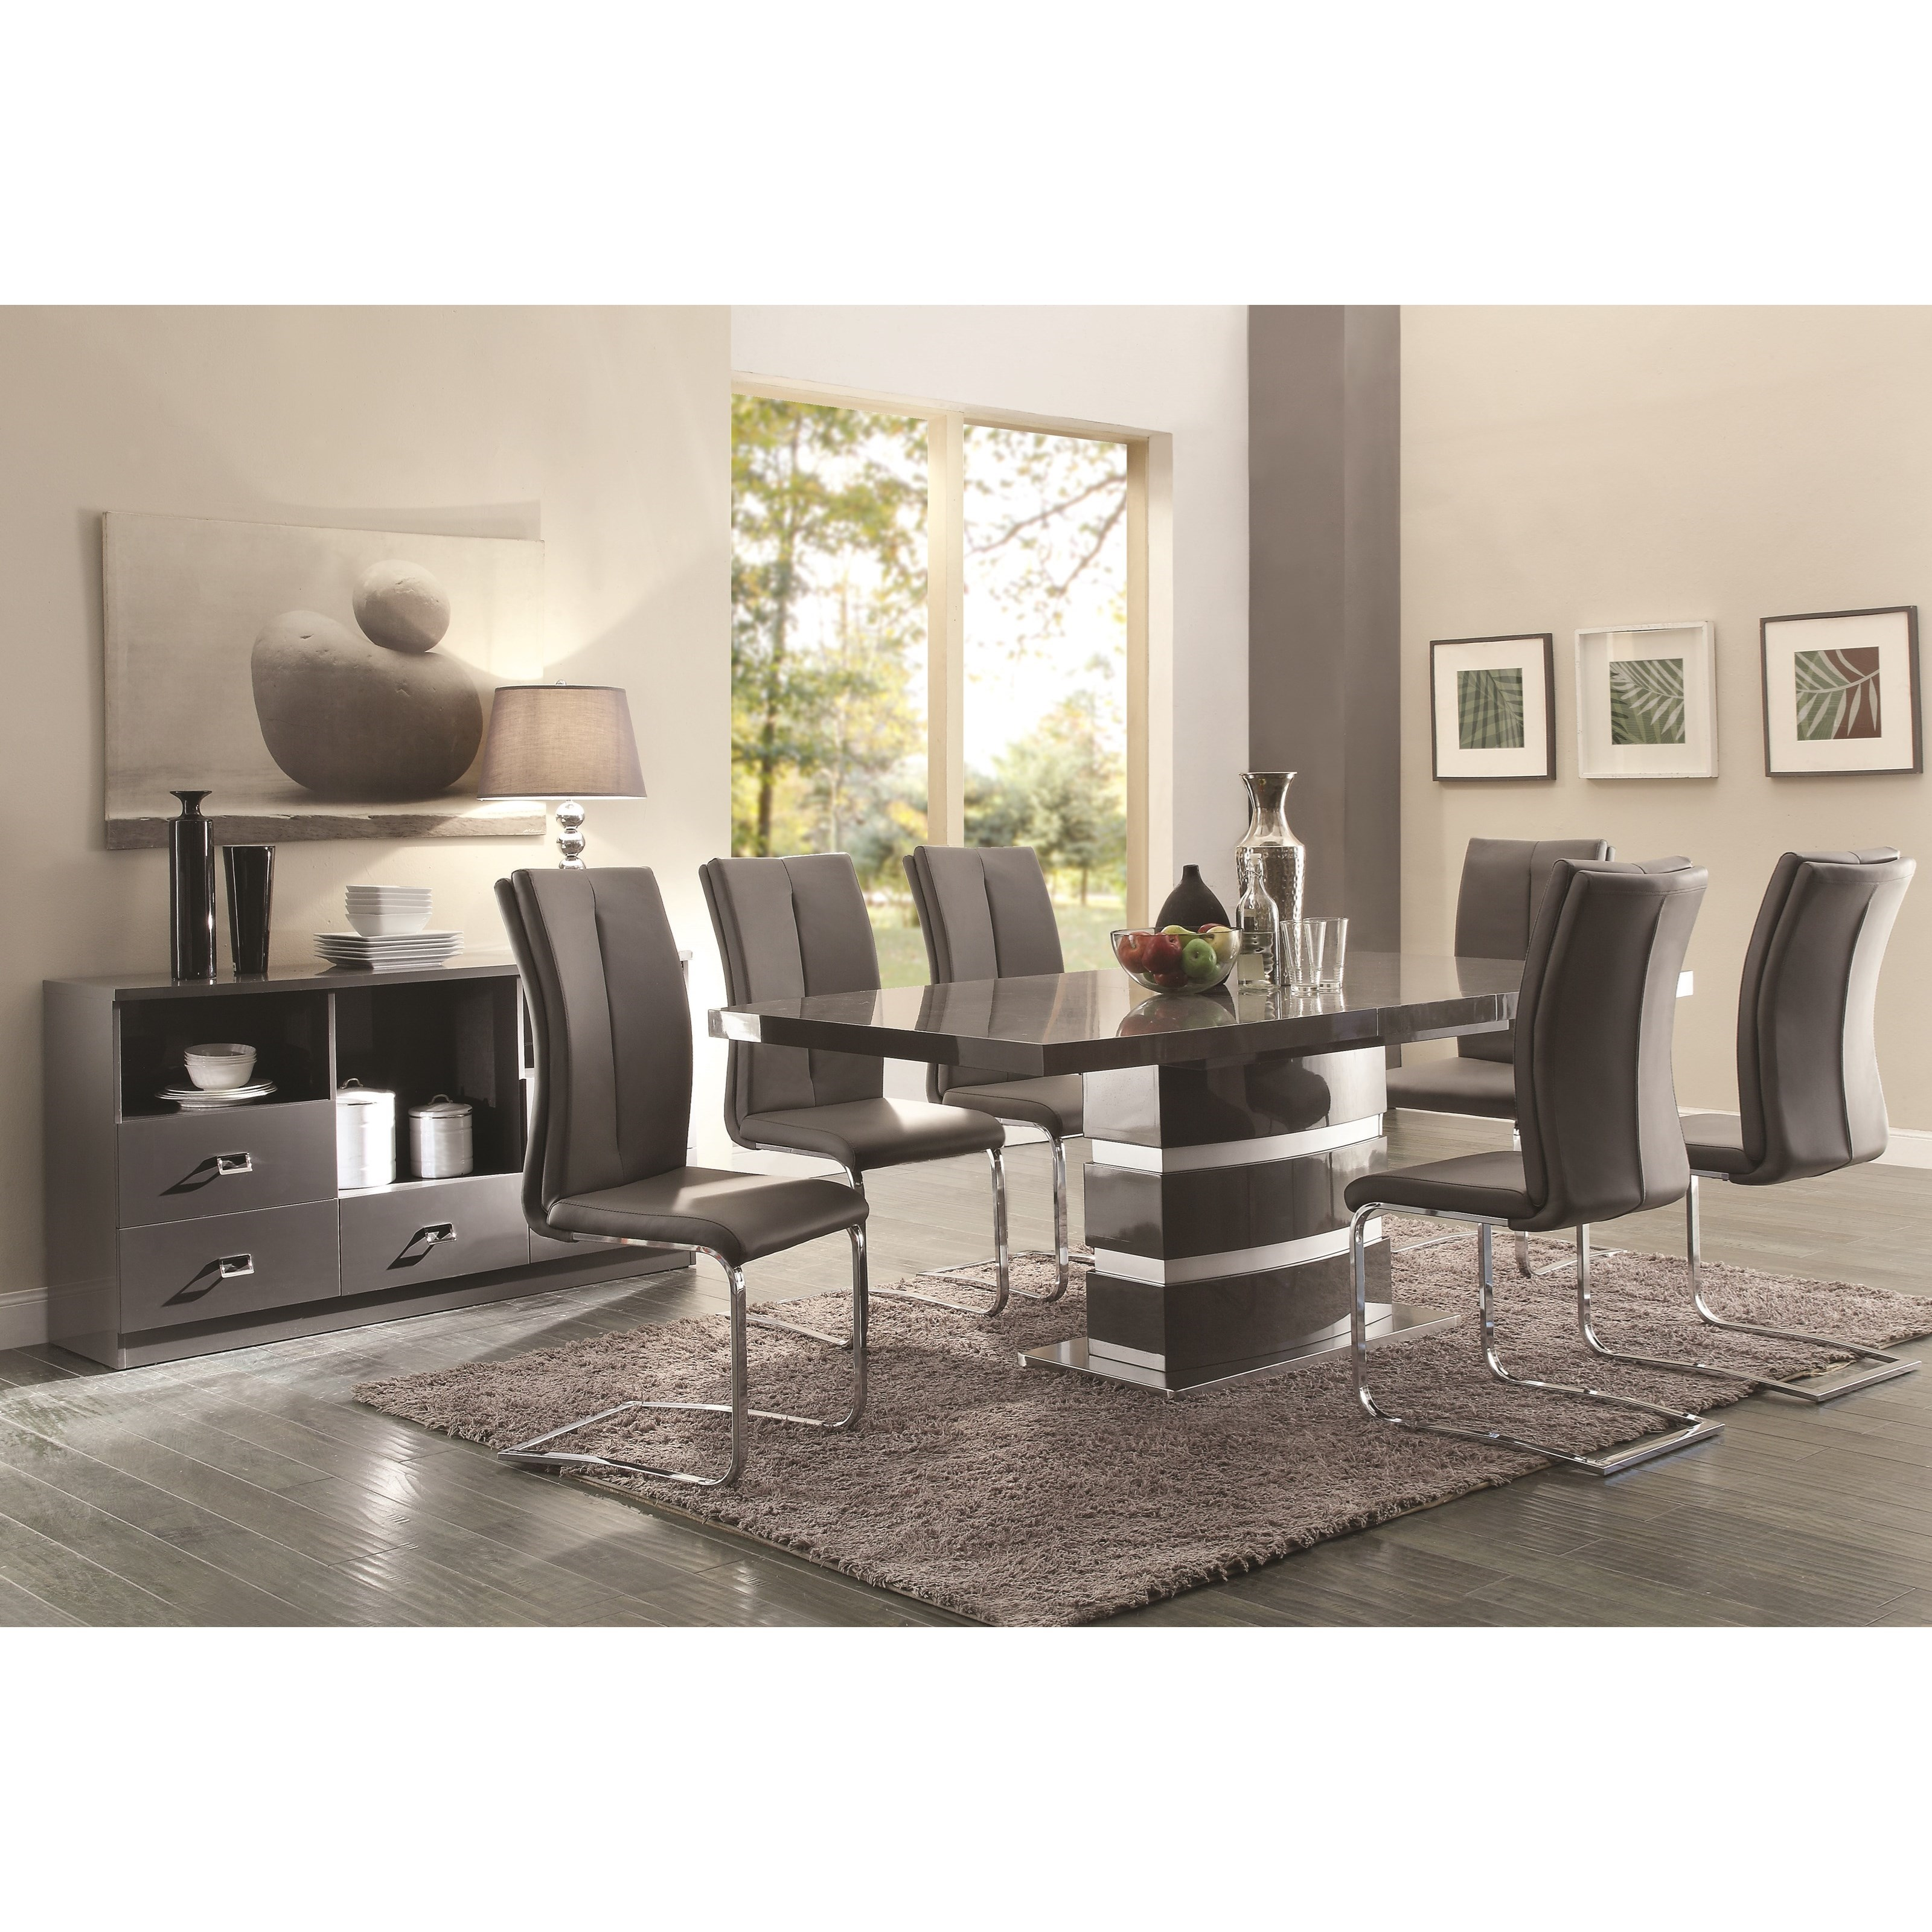 Coaster Lowry Casual Dining Room Group - Item Number: 107001+6x102817+107005